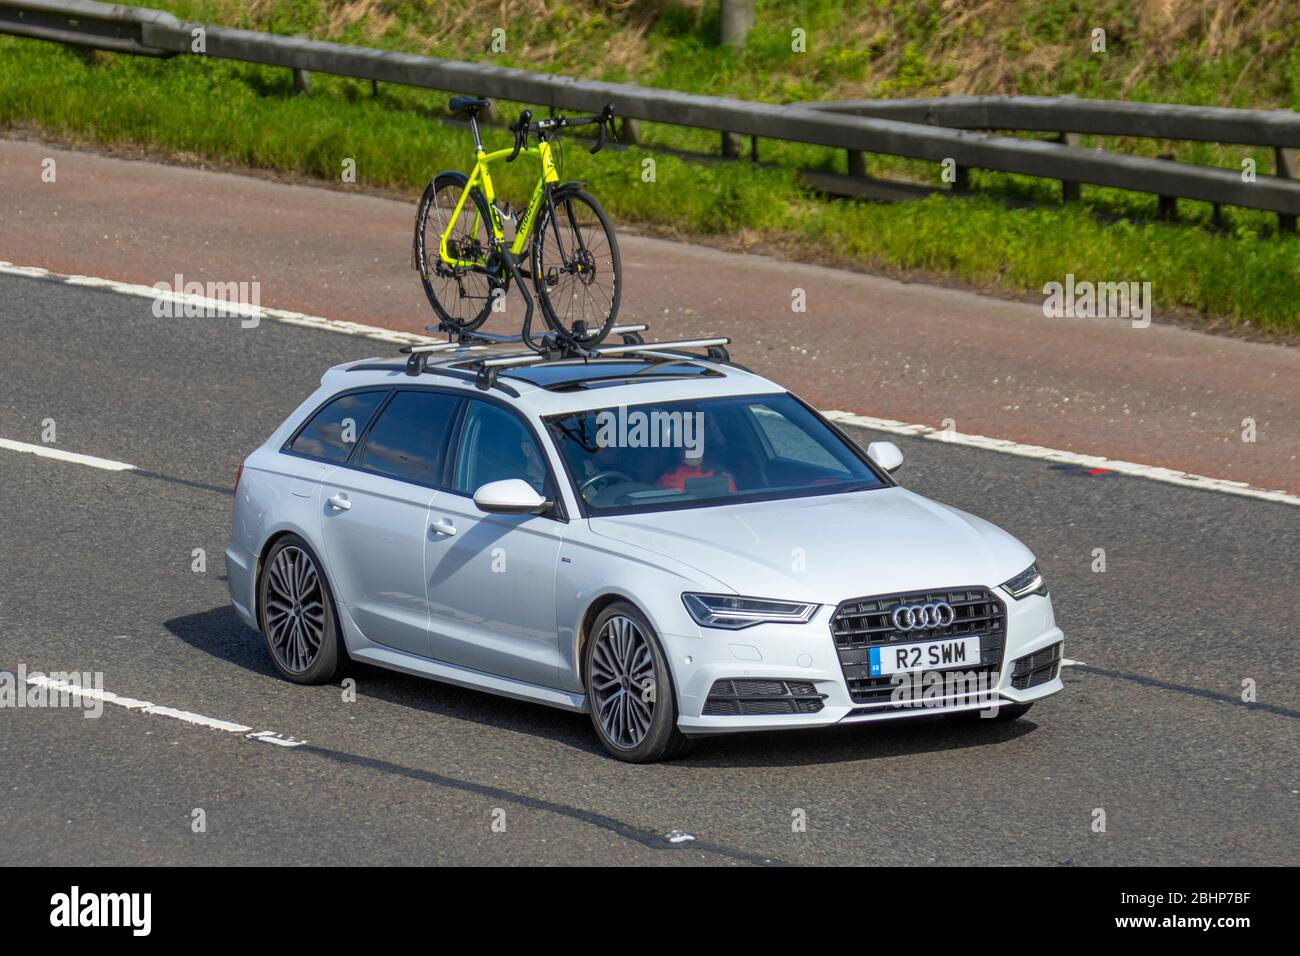 2017 white Audi A6 Sline Black ED TDI ULT; Vehicular traffic moving vehicles, driving vehicle on UK roads, motors, motoring on the M6 motorway highway Stock Photo